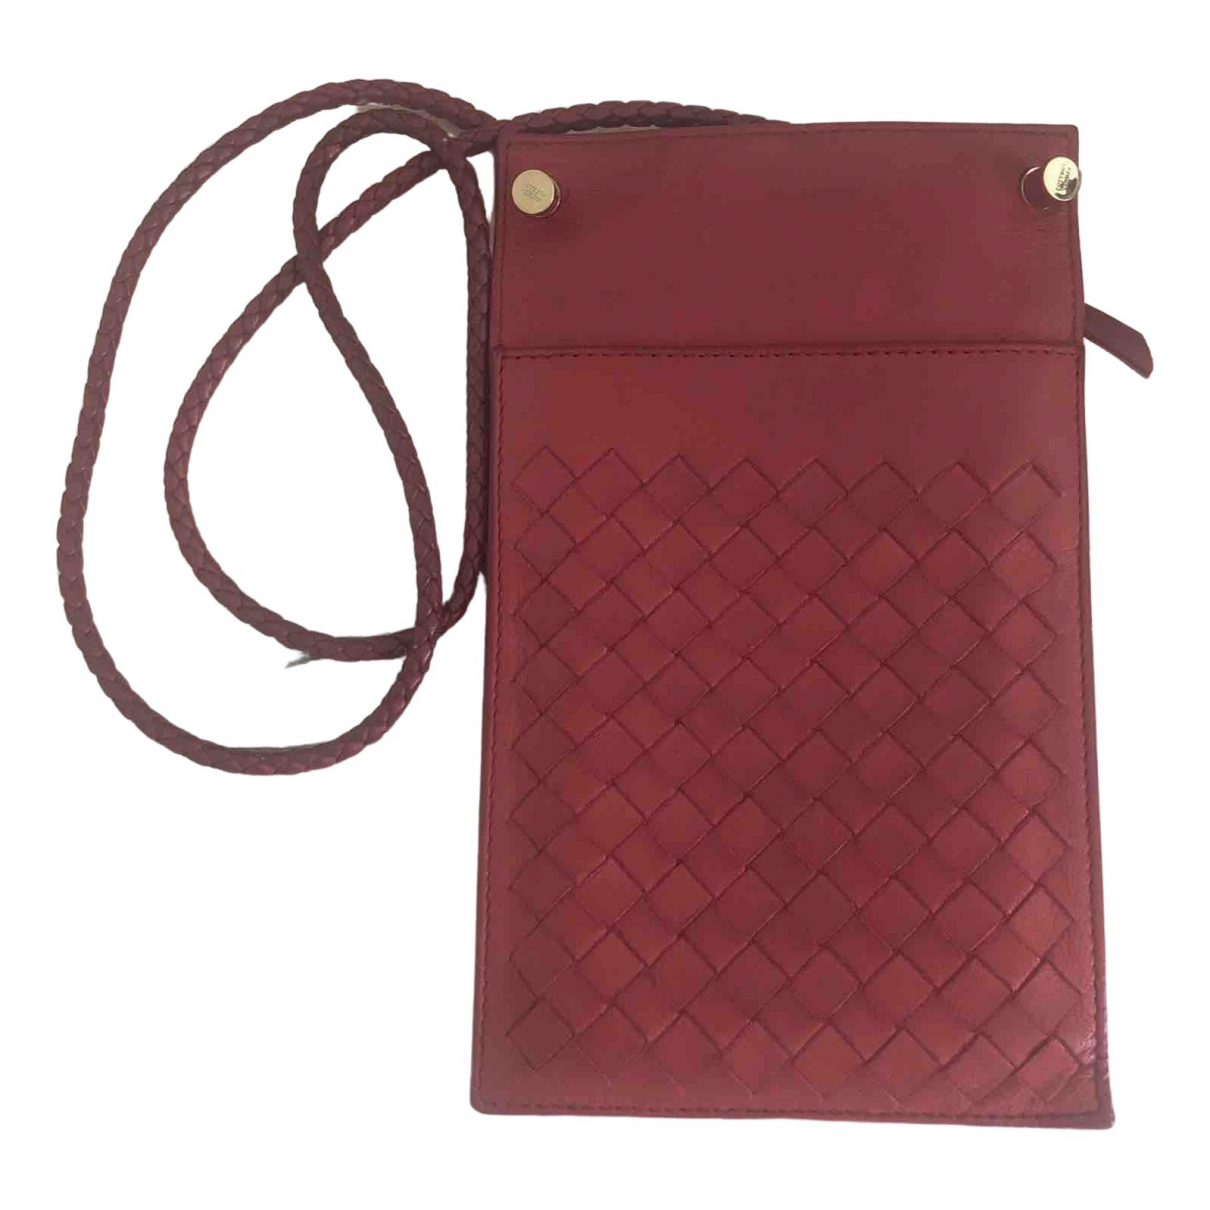 Bottega Veneta \N Red Leather Clutch bag for Women \N